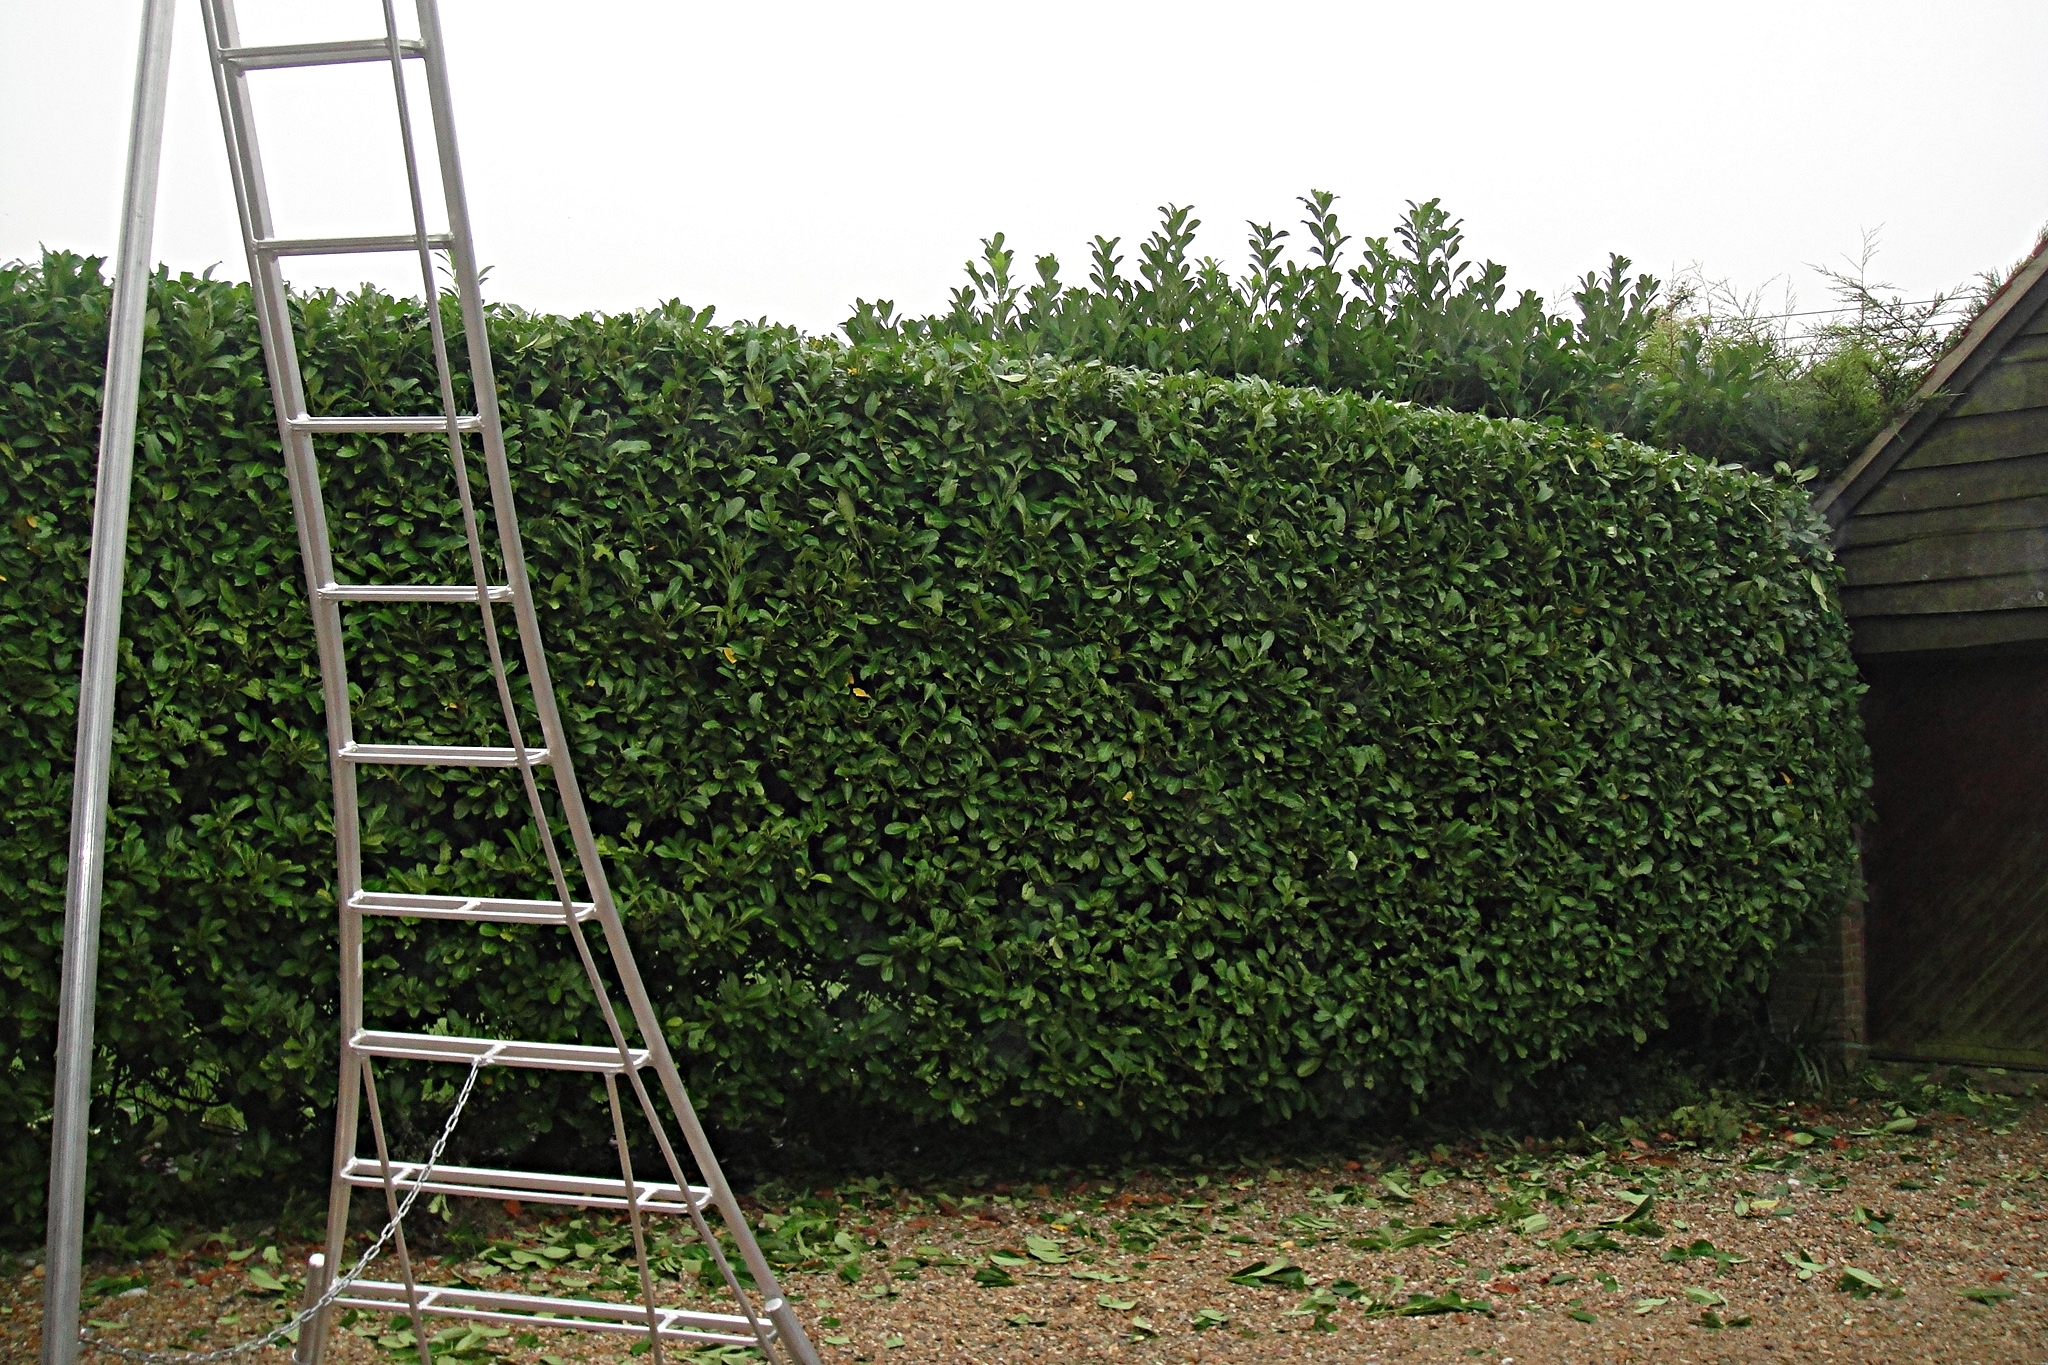 Prices Include All Equipment & Tools Needed - All our teams are fully equipped with everything needed to carry out a wide variety of garden maintenance jobs.